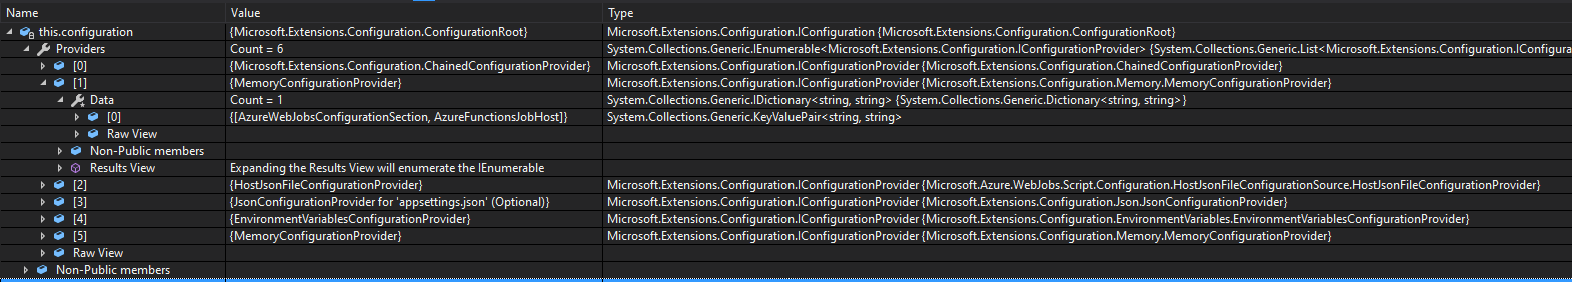 Visual Studio Watch window showing the contents of the provided IConfiguration instance